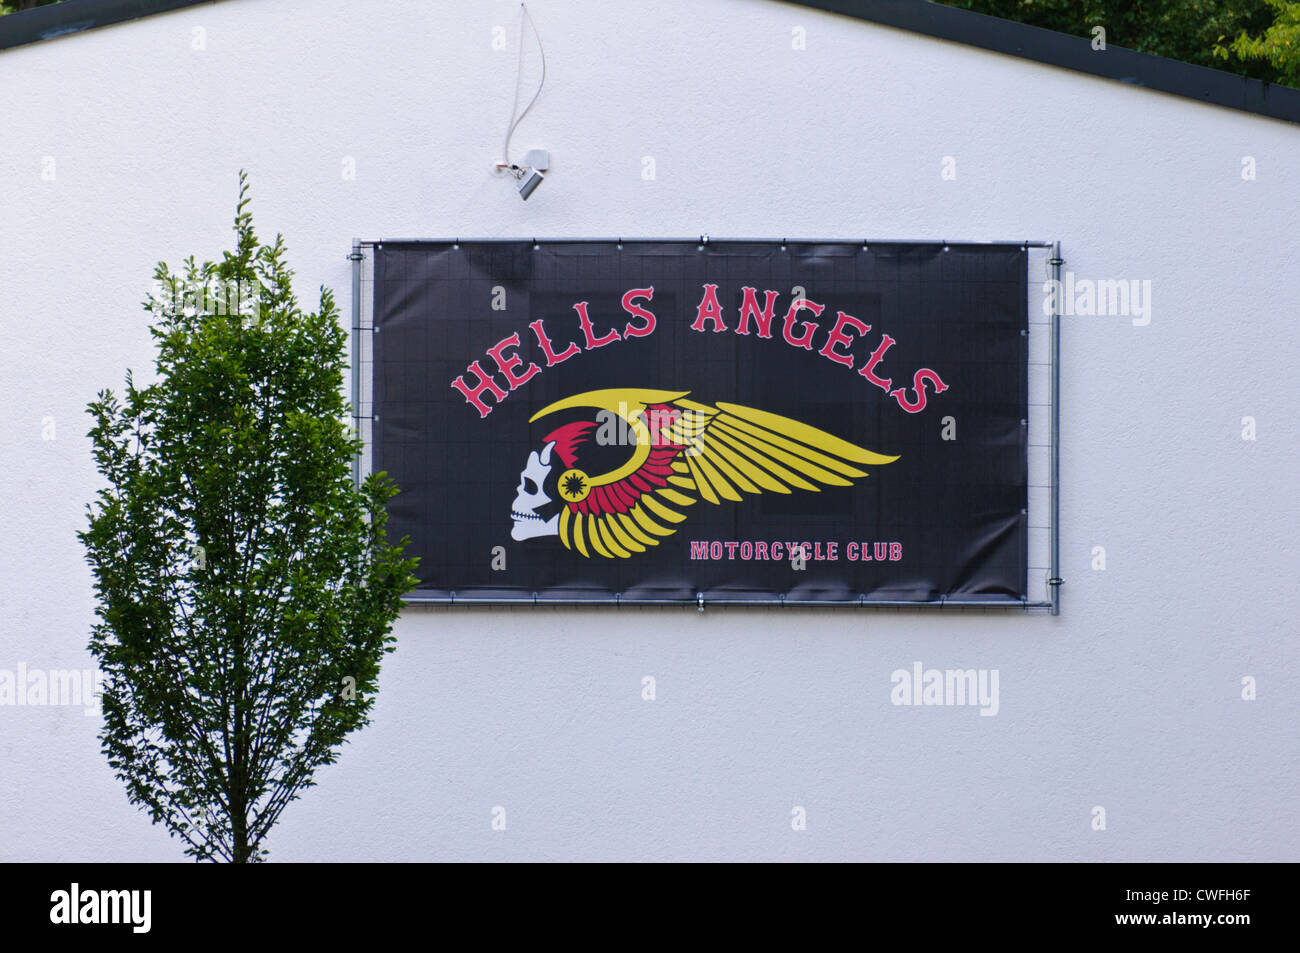 Hells Angels Motorcycle Club gang clubhouse with emblem on house front - Heilbronn Biberach Germany Europe Stock Photo